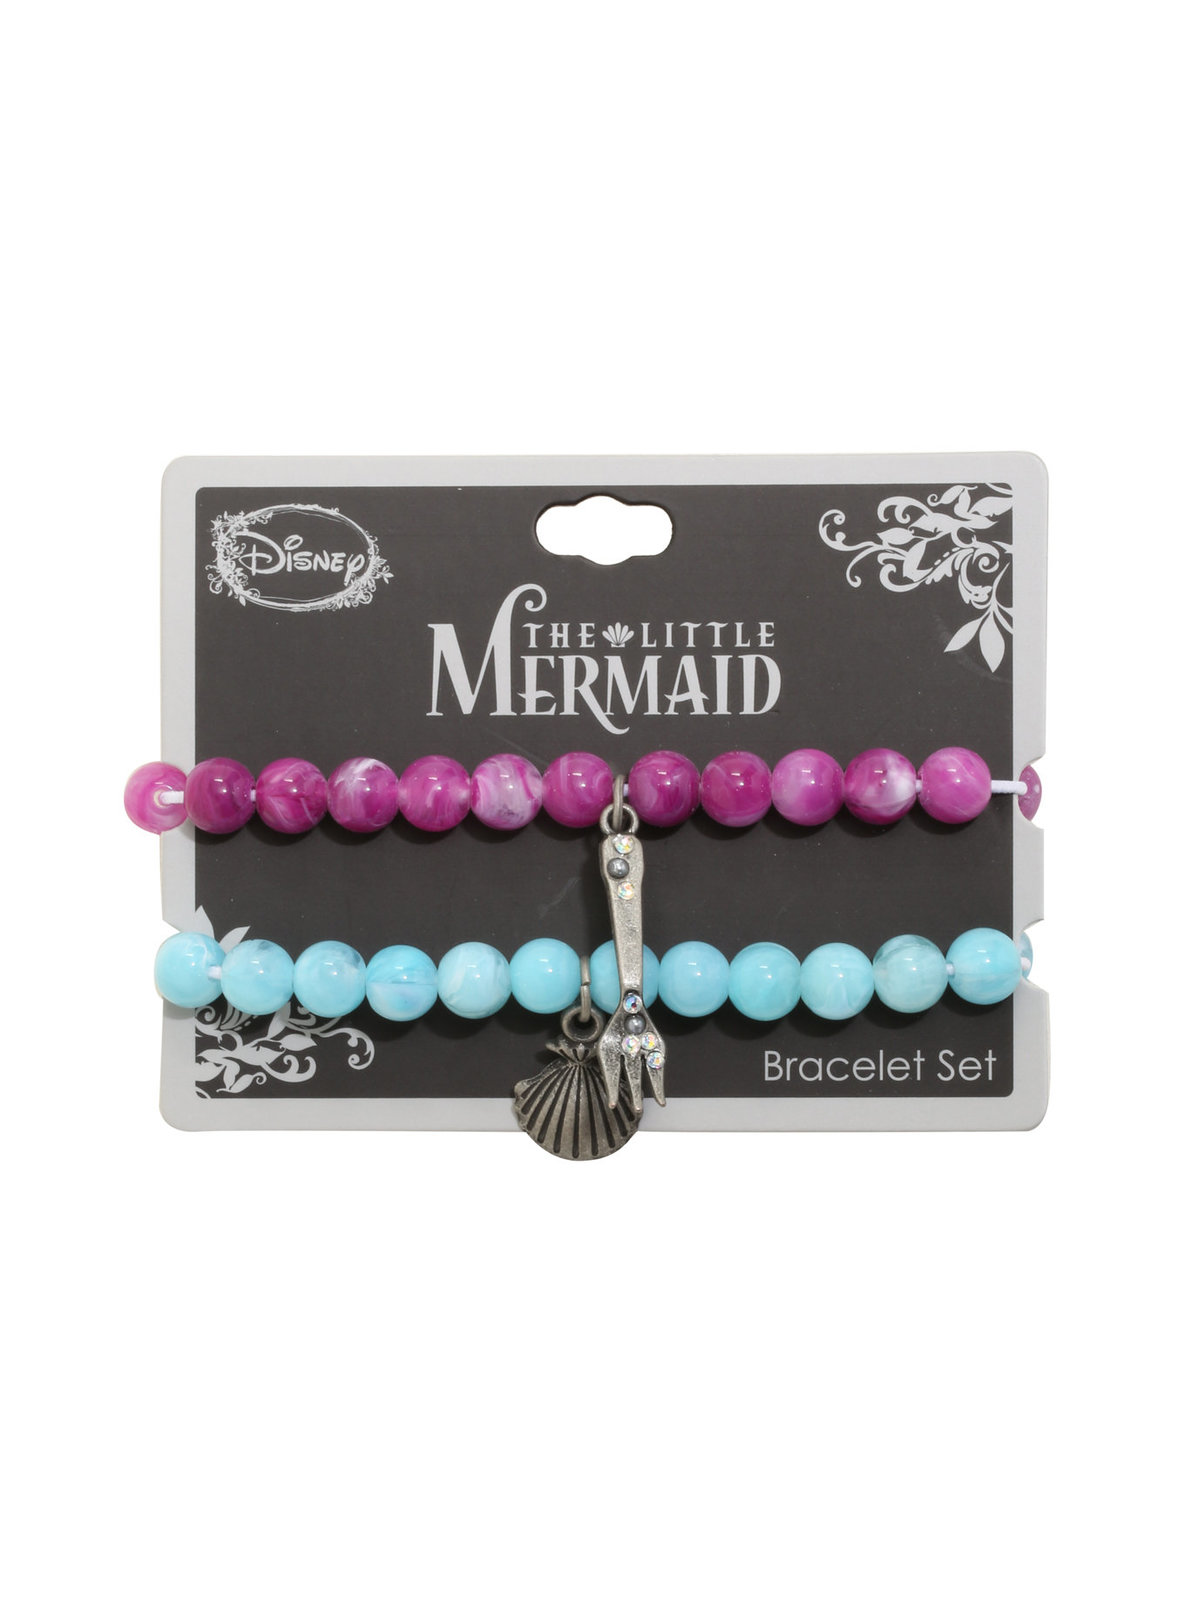 Neon Tuesday: The Little Mermaid - Shell And Fork Bracelet Set image